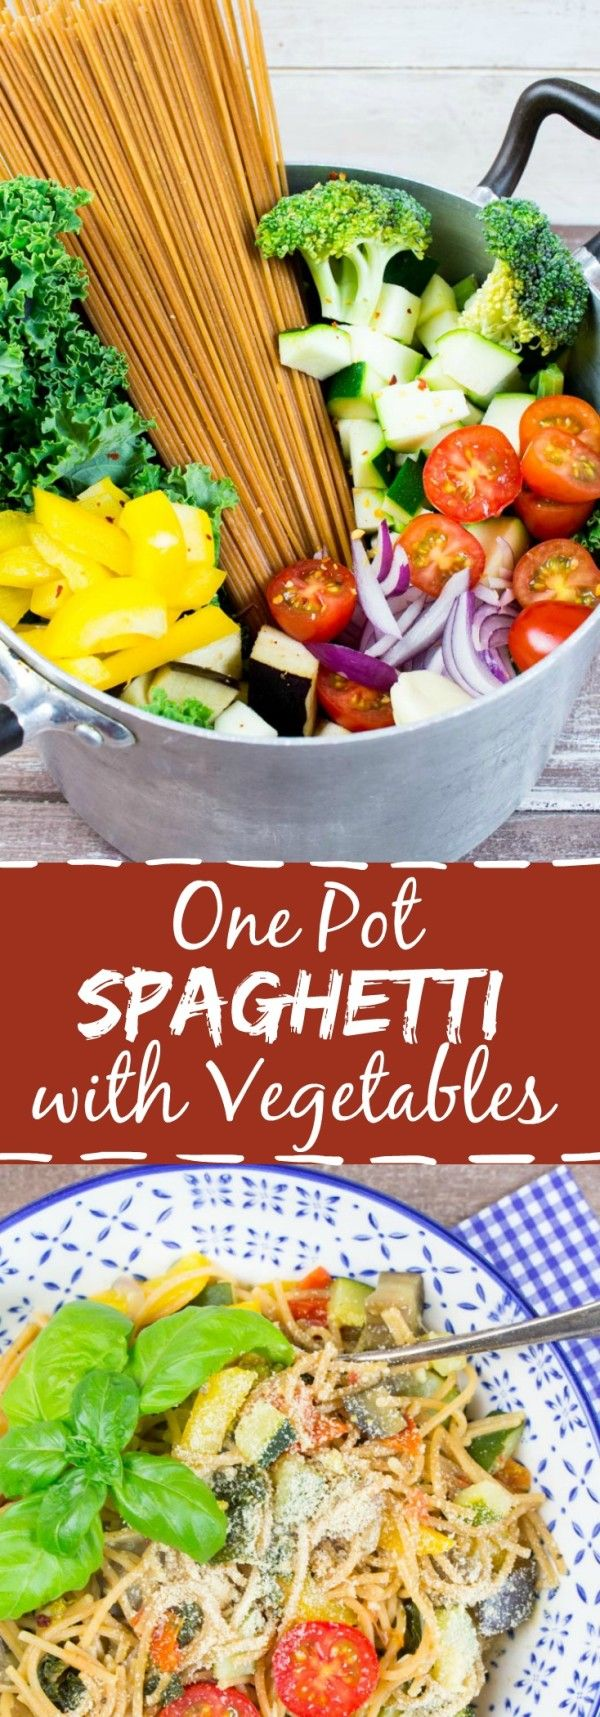 Vegan One Pot Spaghetti with Vegetables